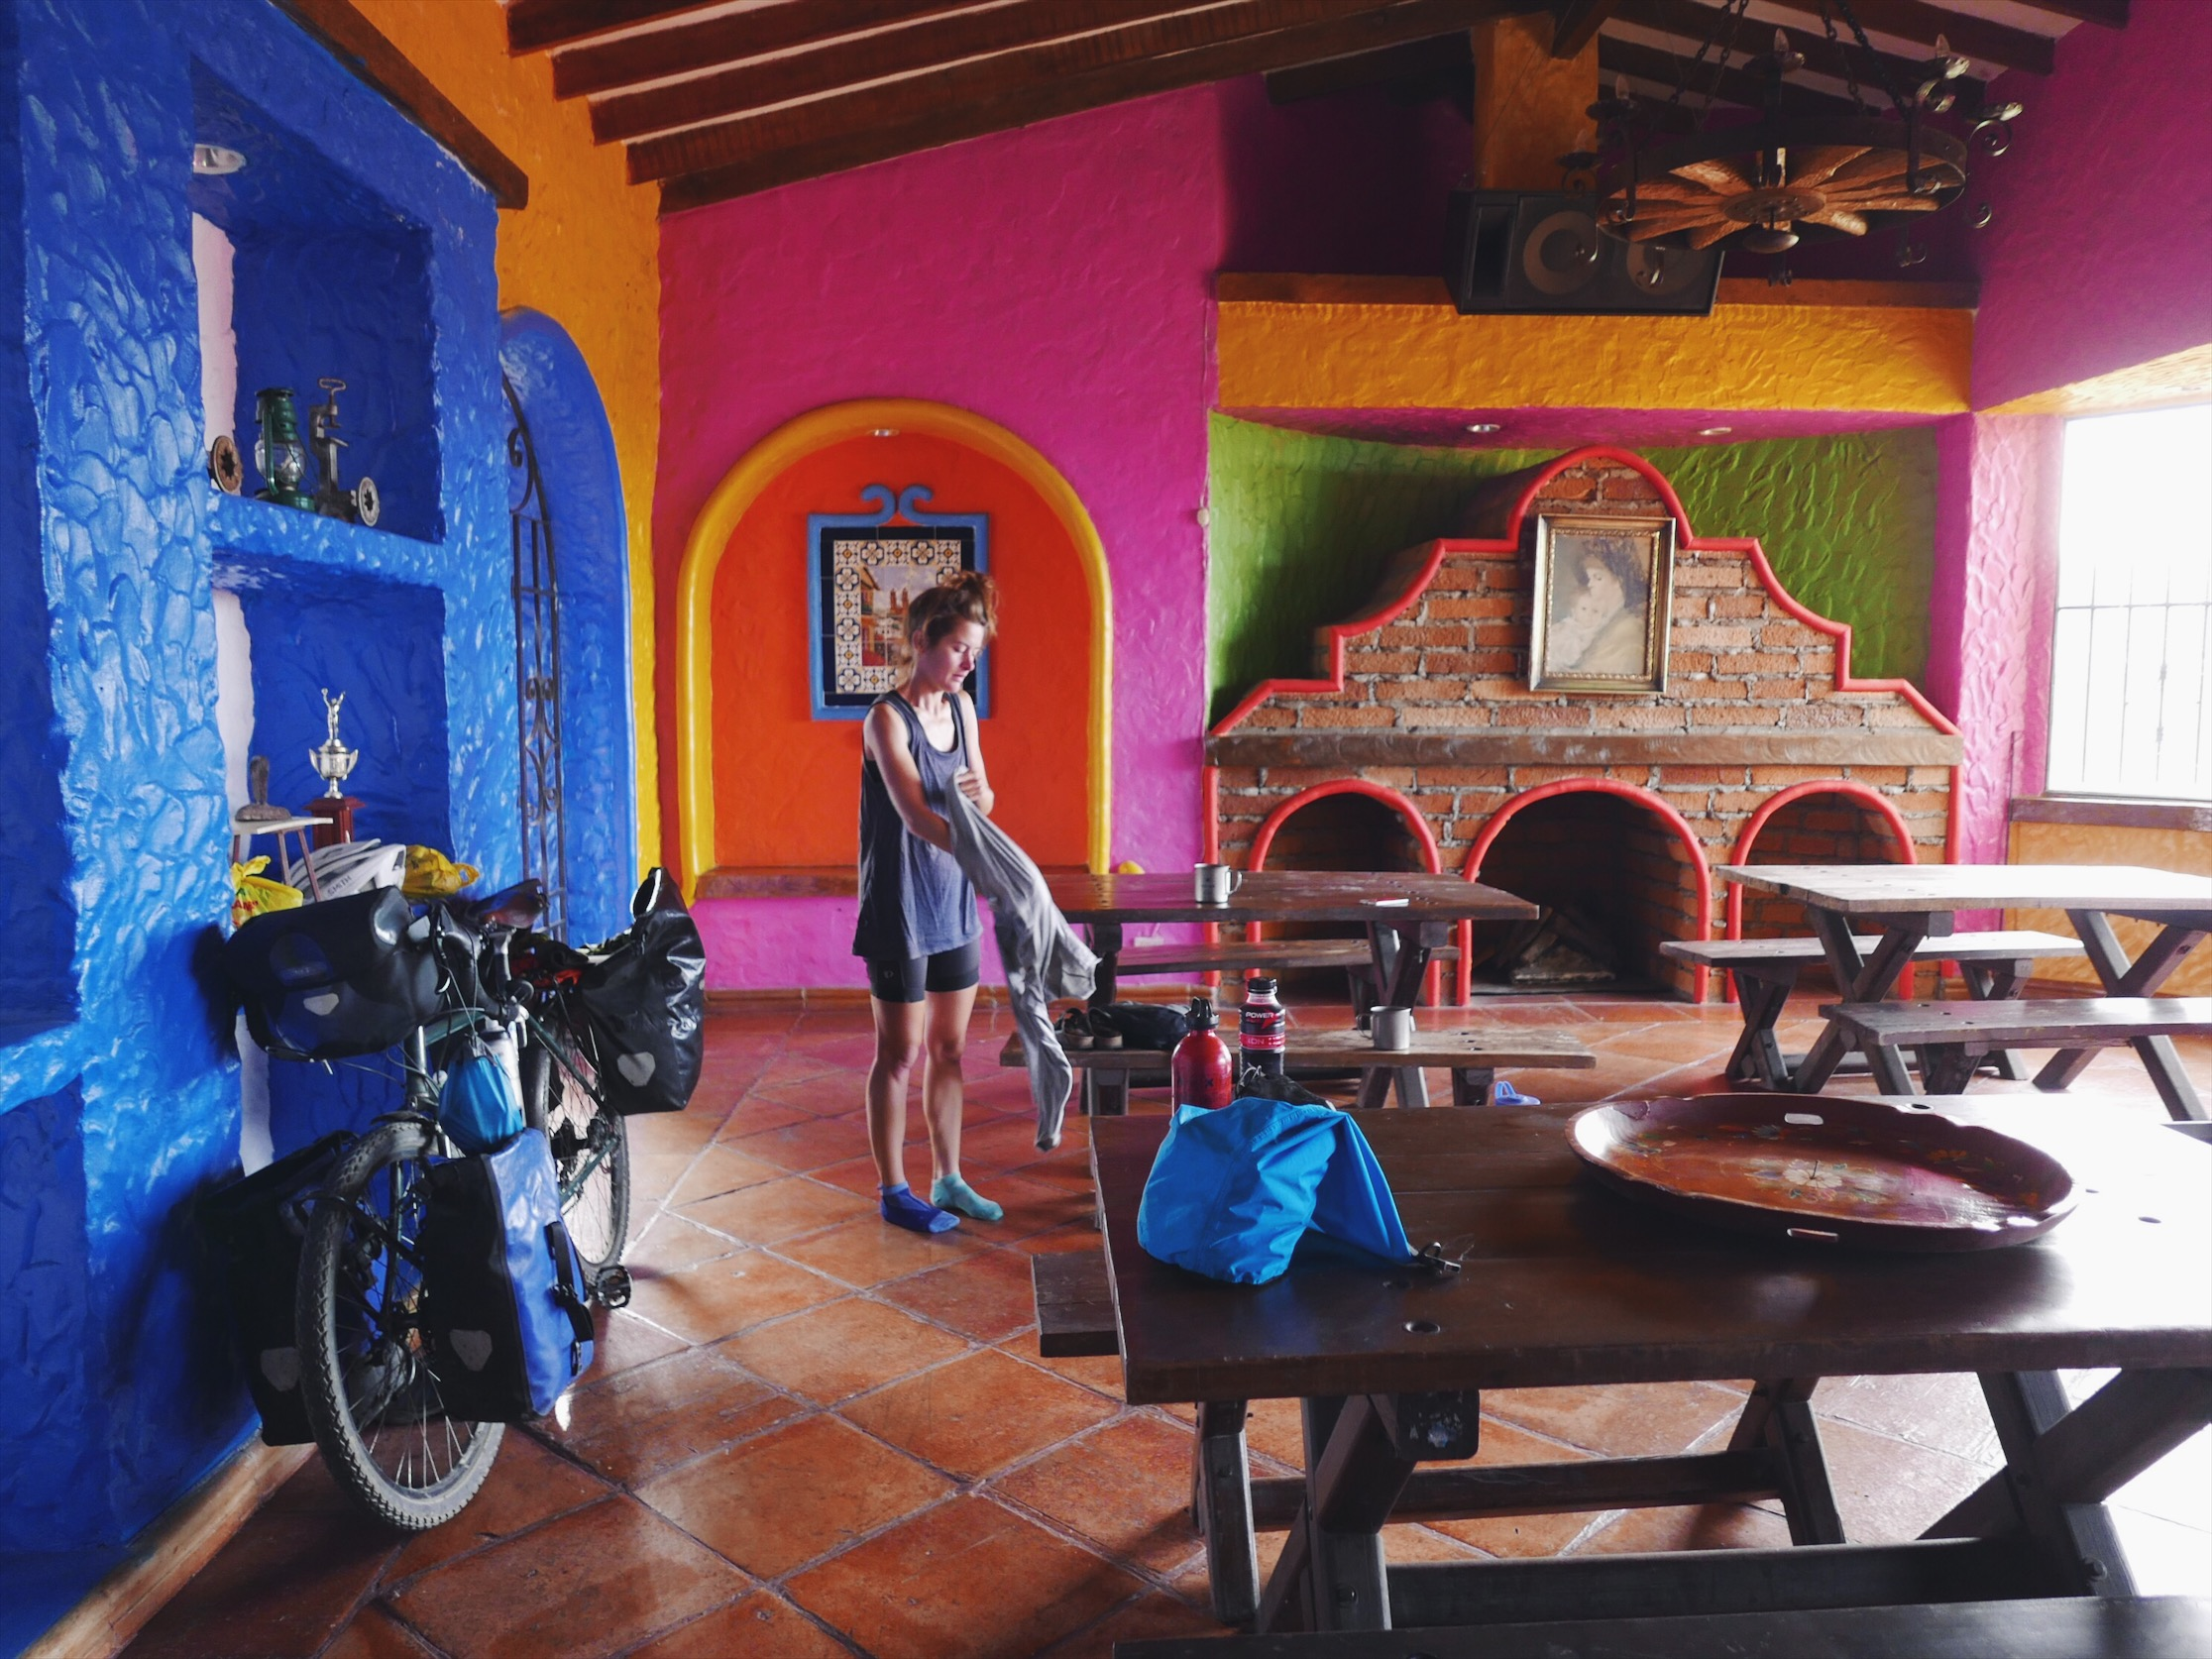 Roadside and completely wrecked, a generous Colombian family offered us space in this long-since-closed restaurant. Easily one of our most colorful campsites.